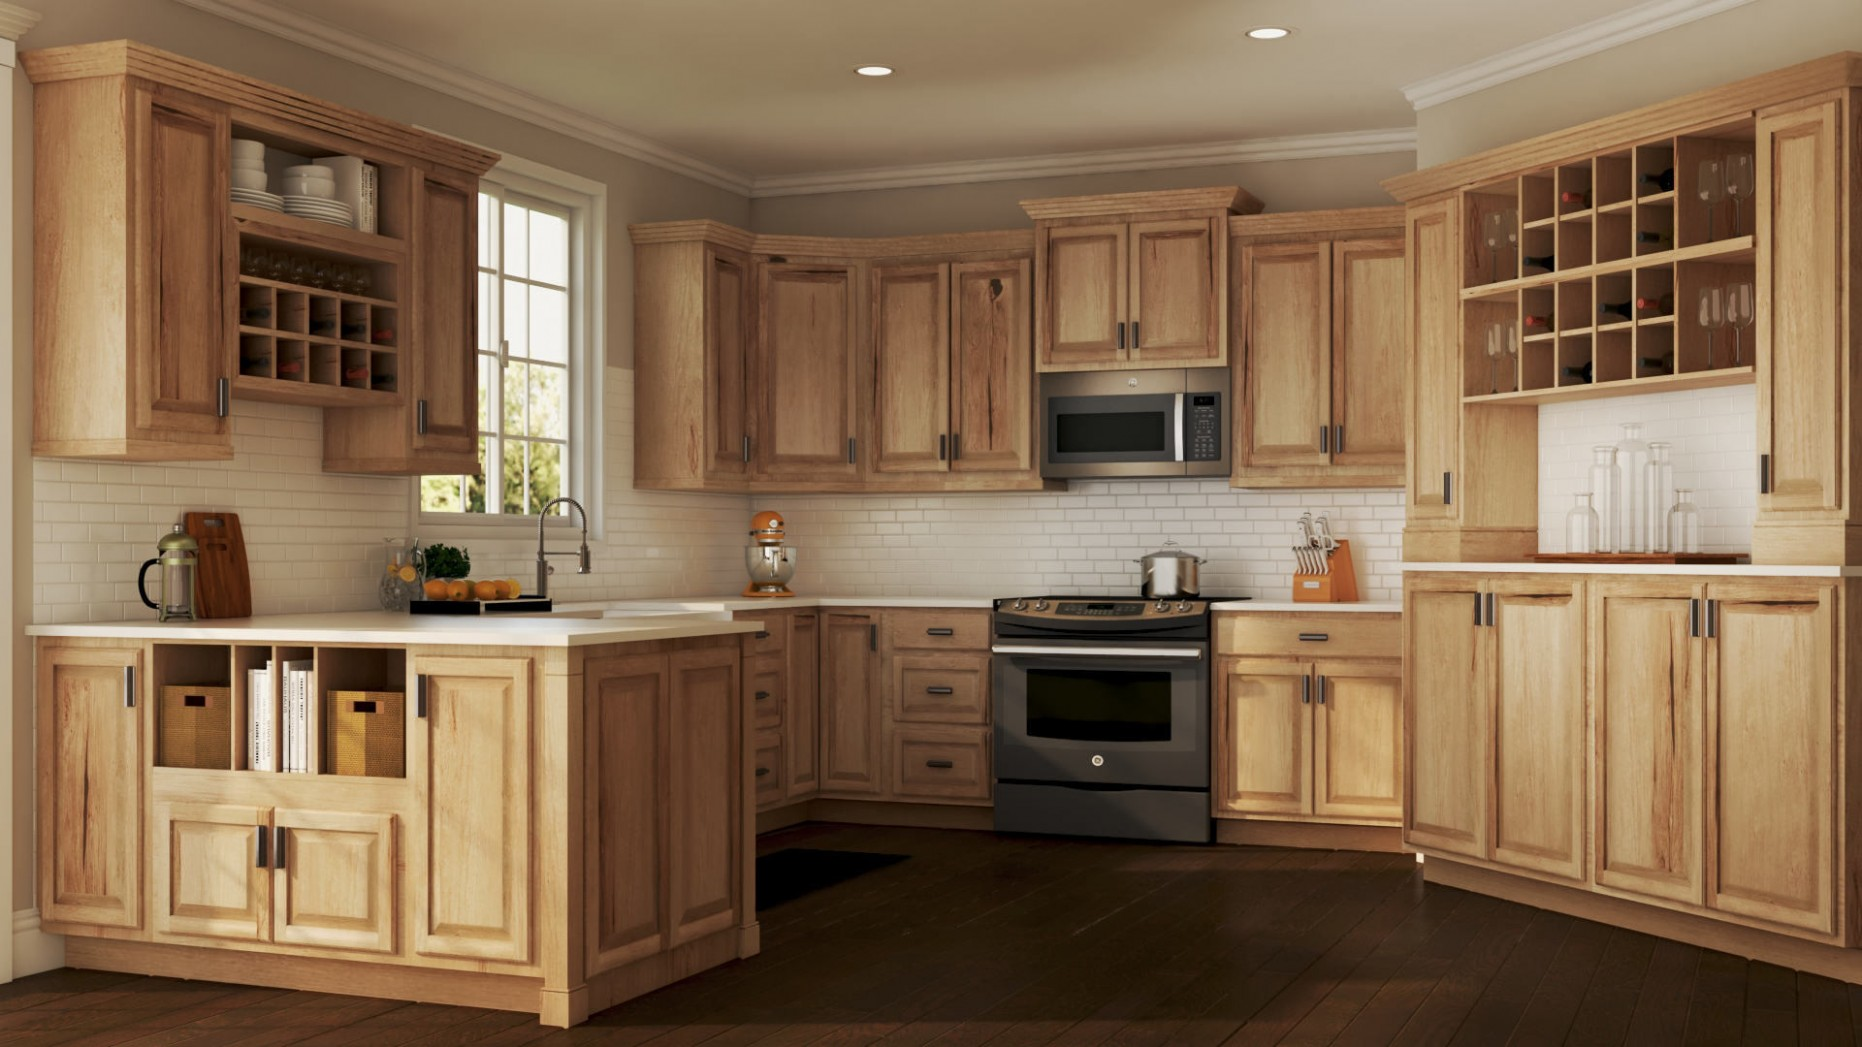 Hampton Wall Kitchen Cabinets in Natural Hickory – Kitchen – The  - Natural Hickory Kitchen Cabinets